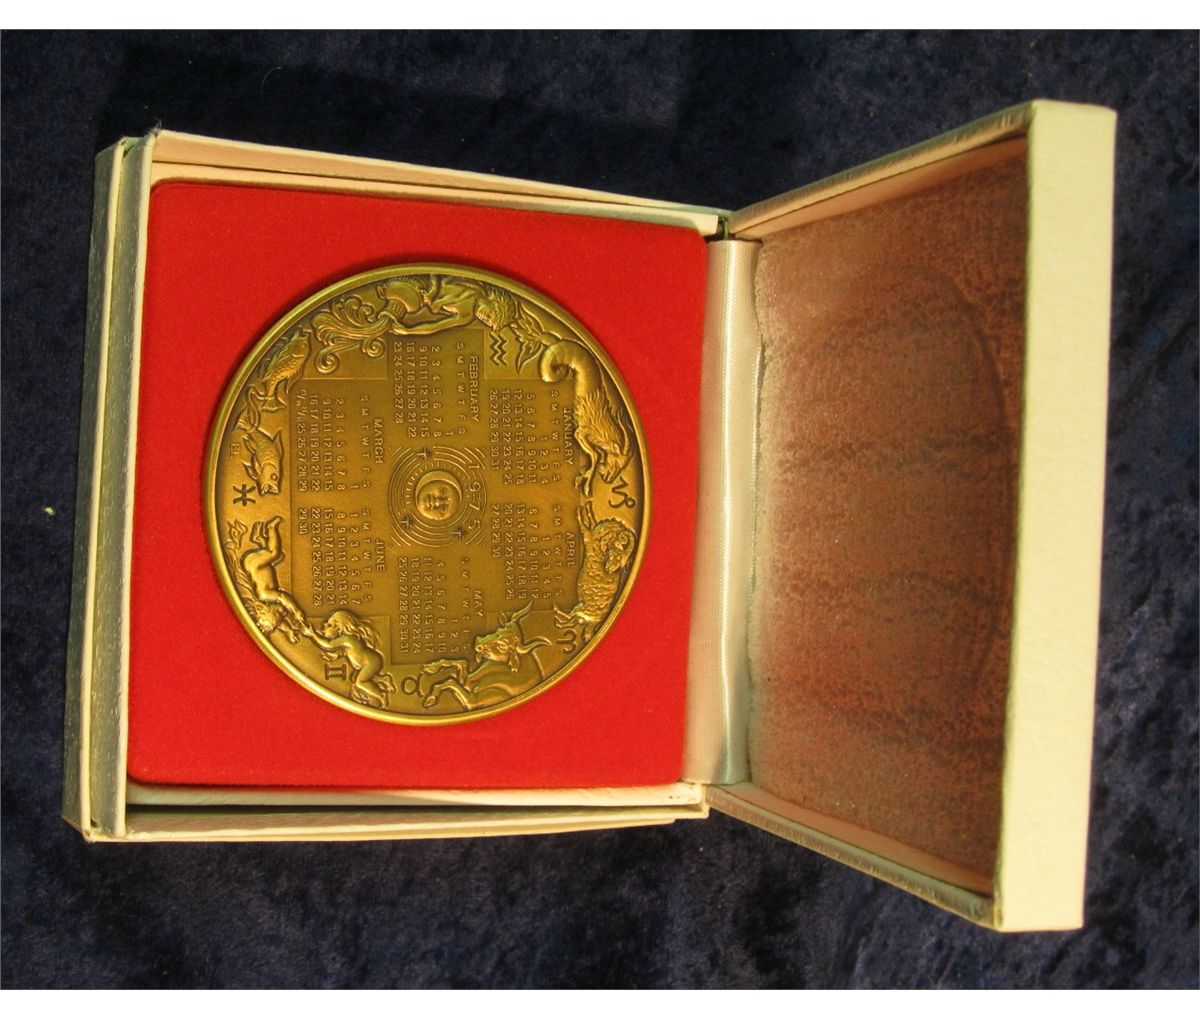 641 1975 Franklin Mint Annual Calendar Art Medal Bronze 77mm In